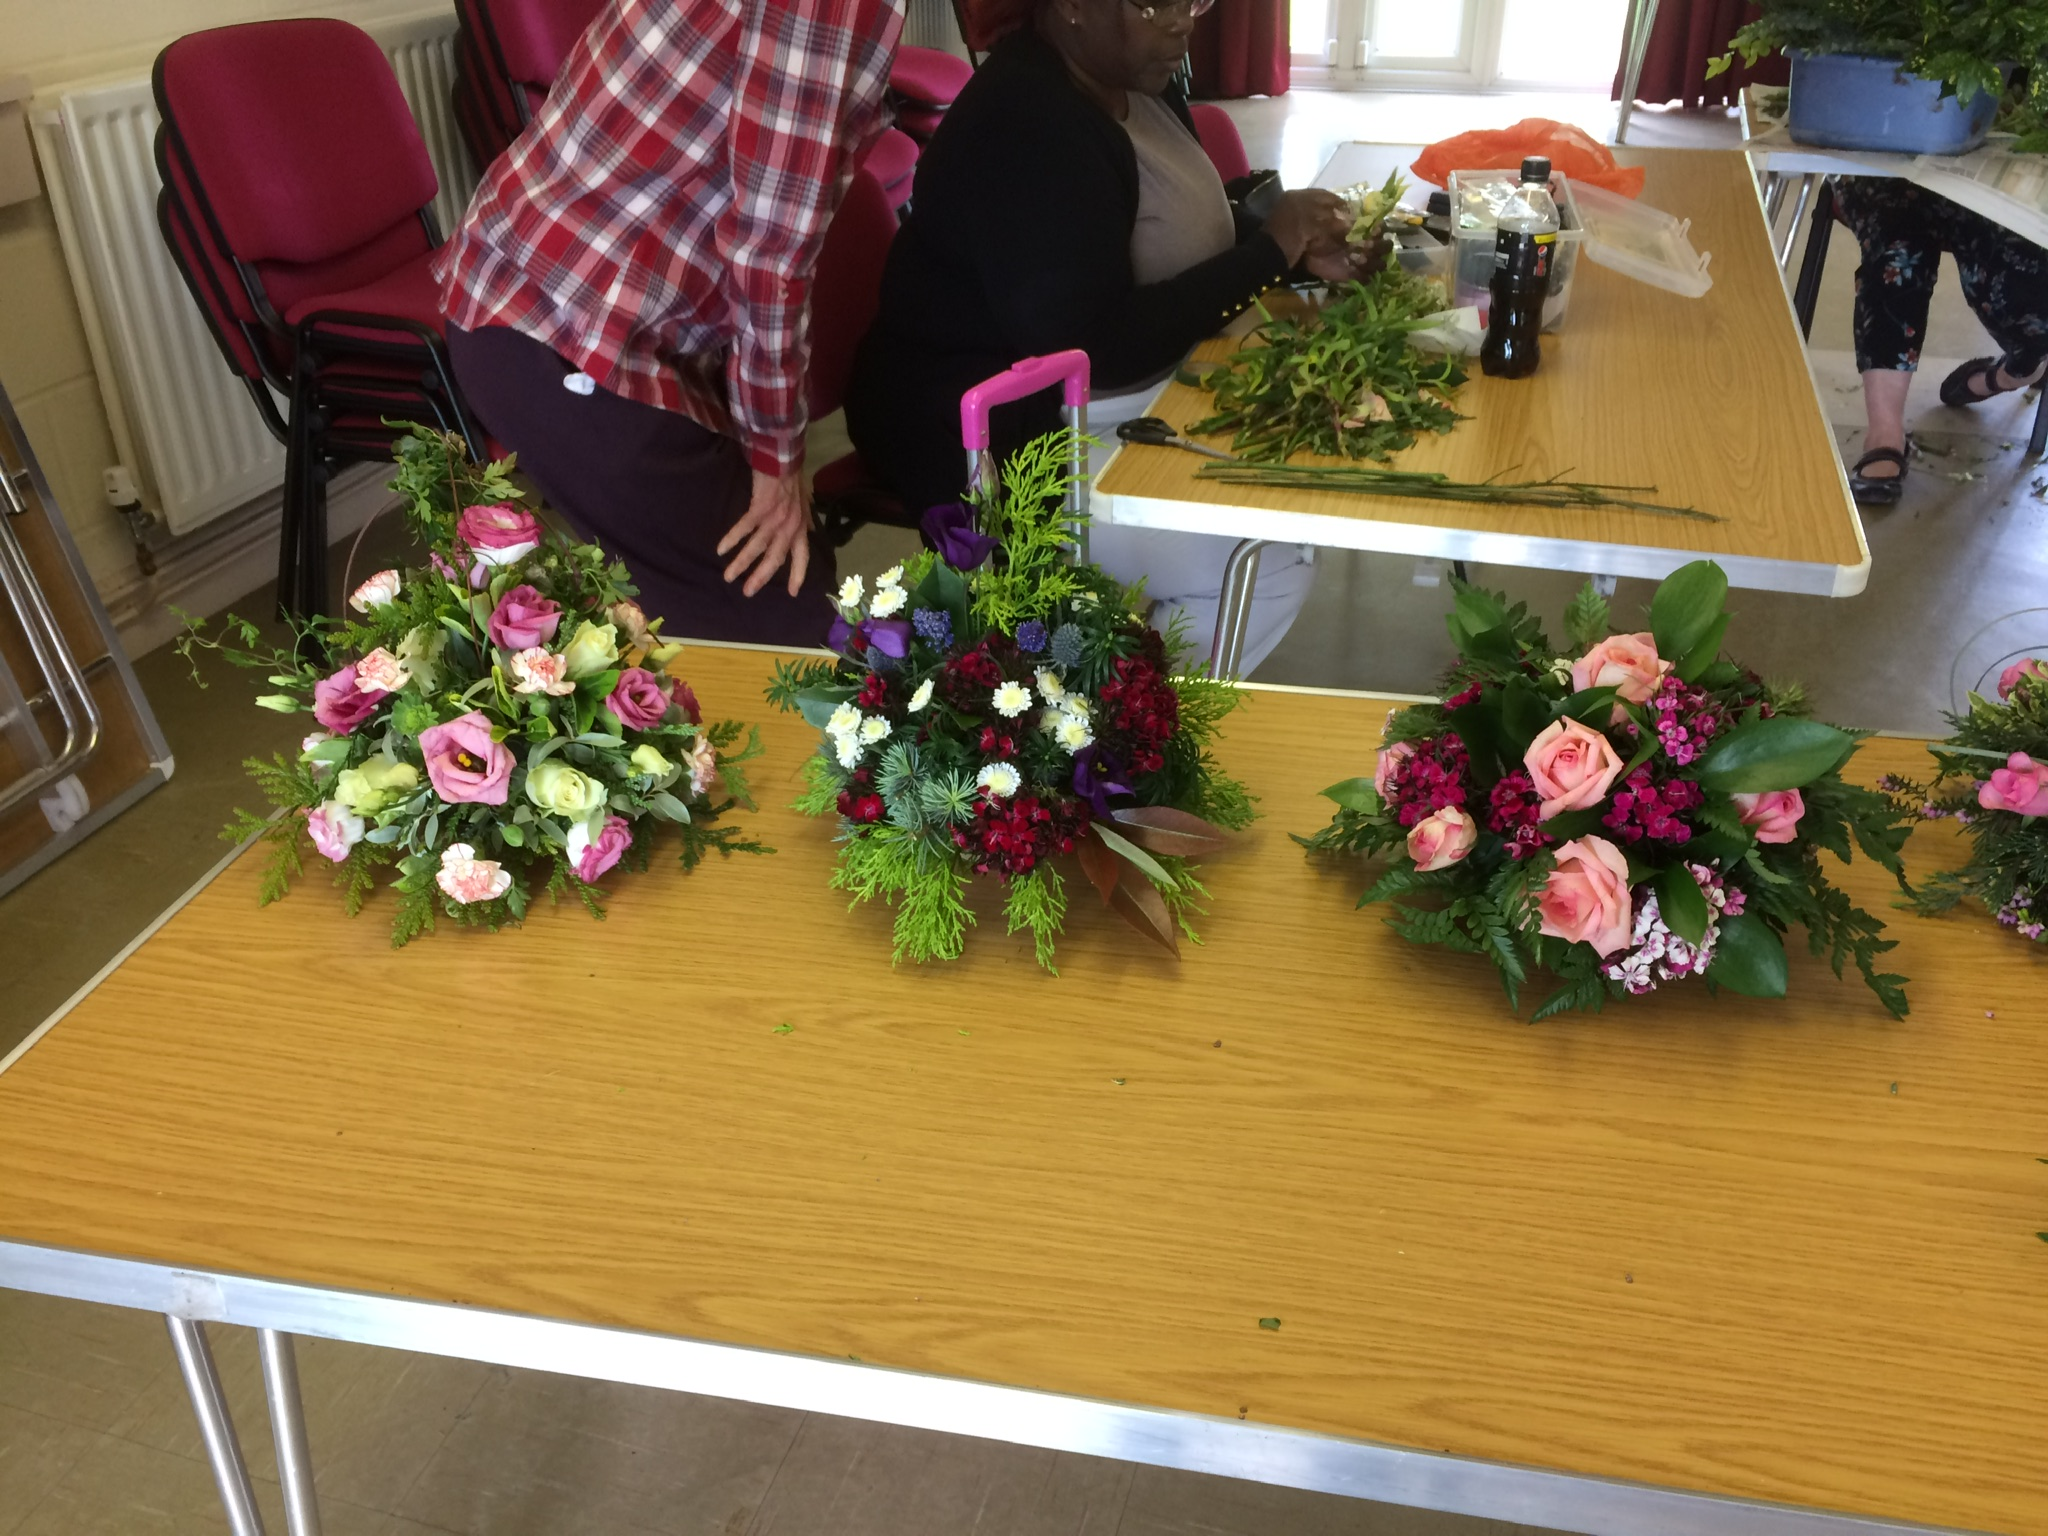 Flower arranging 2, May19